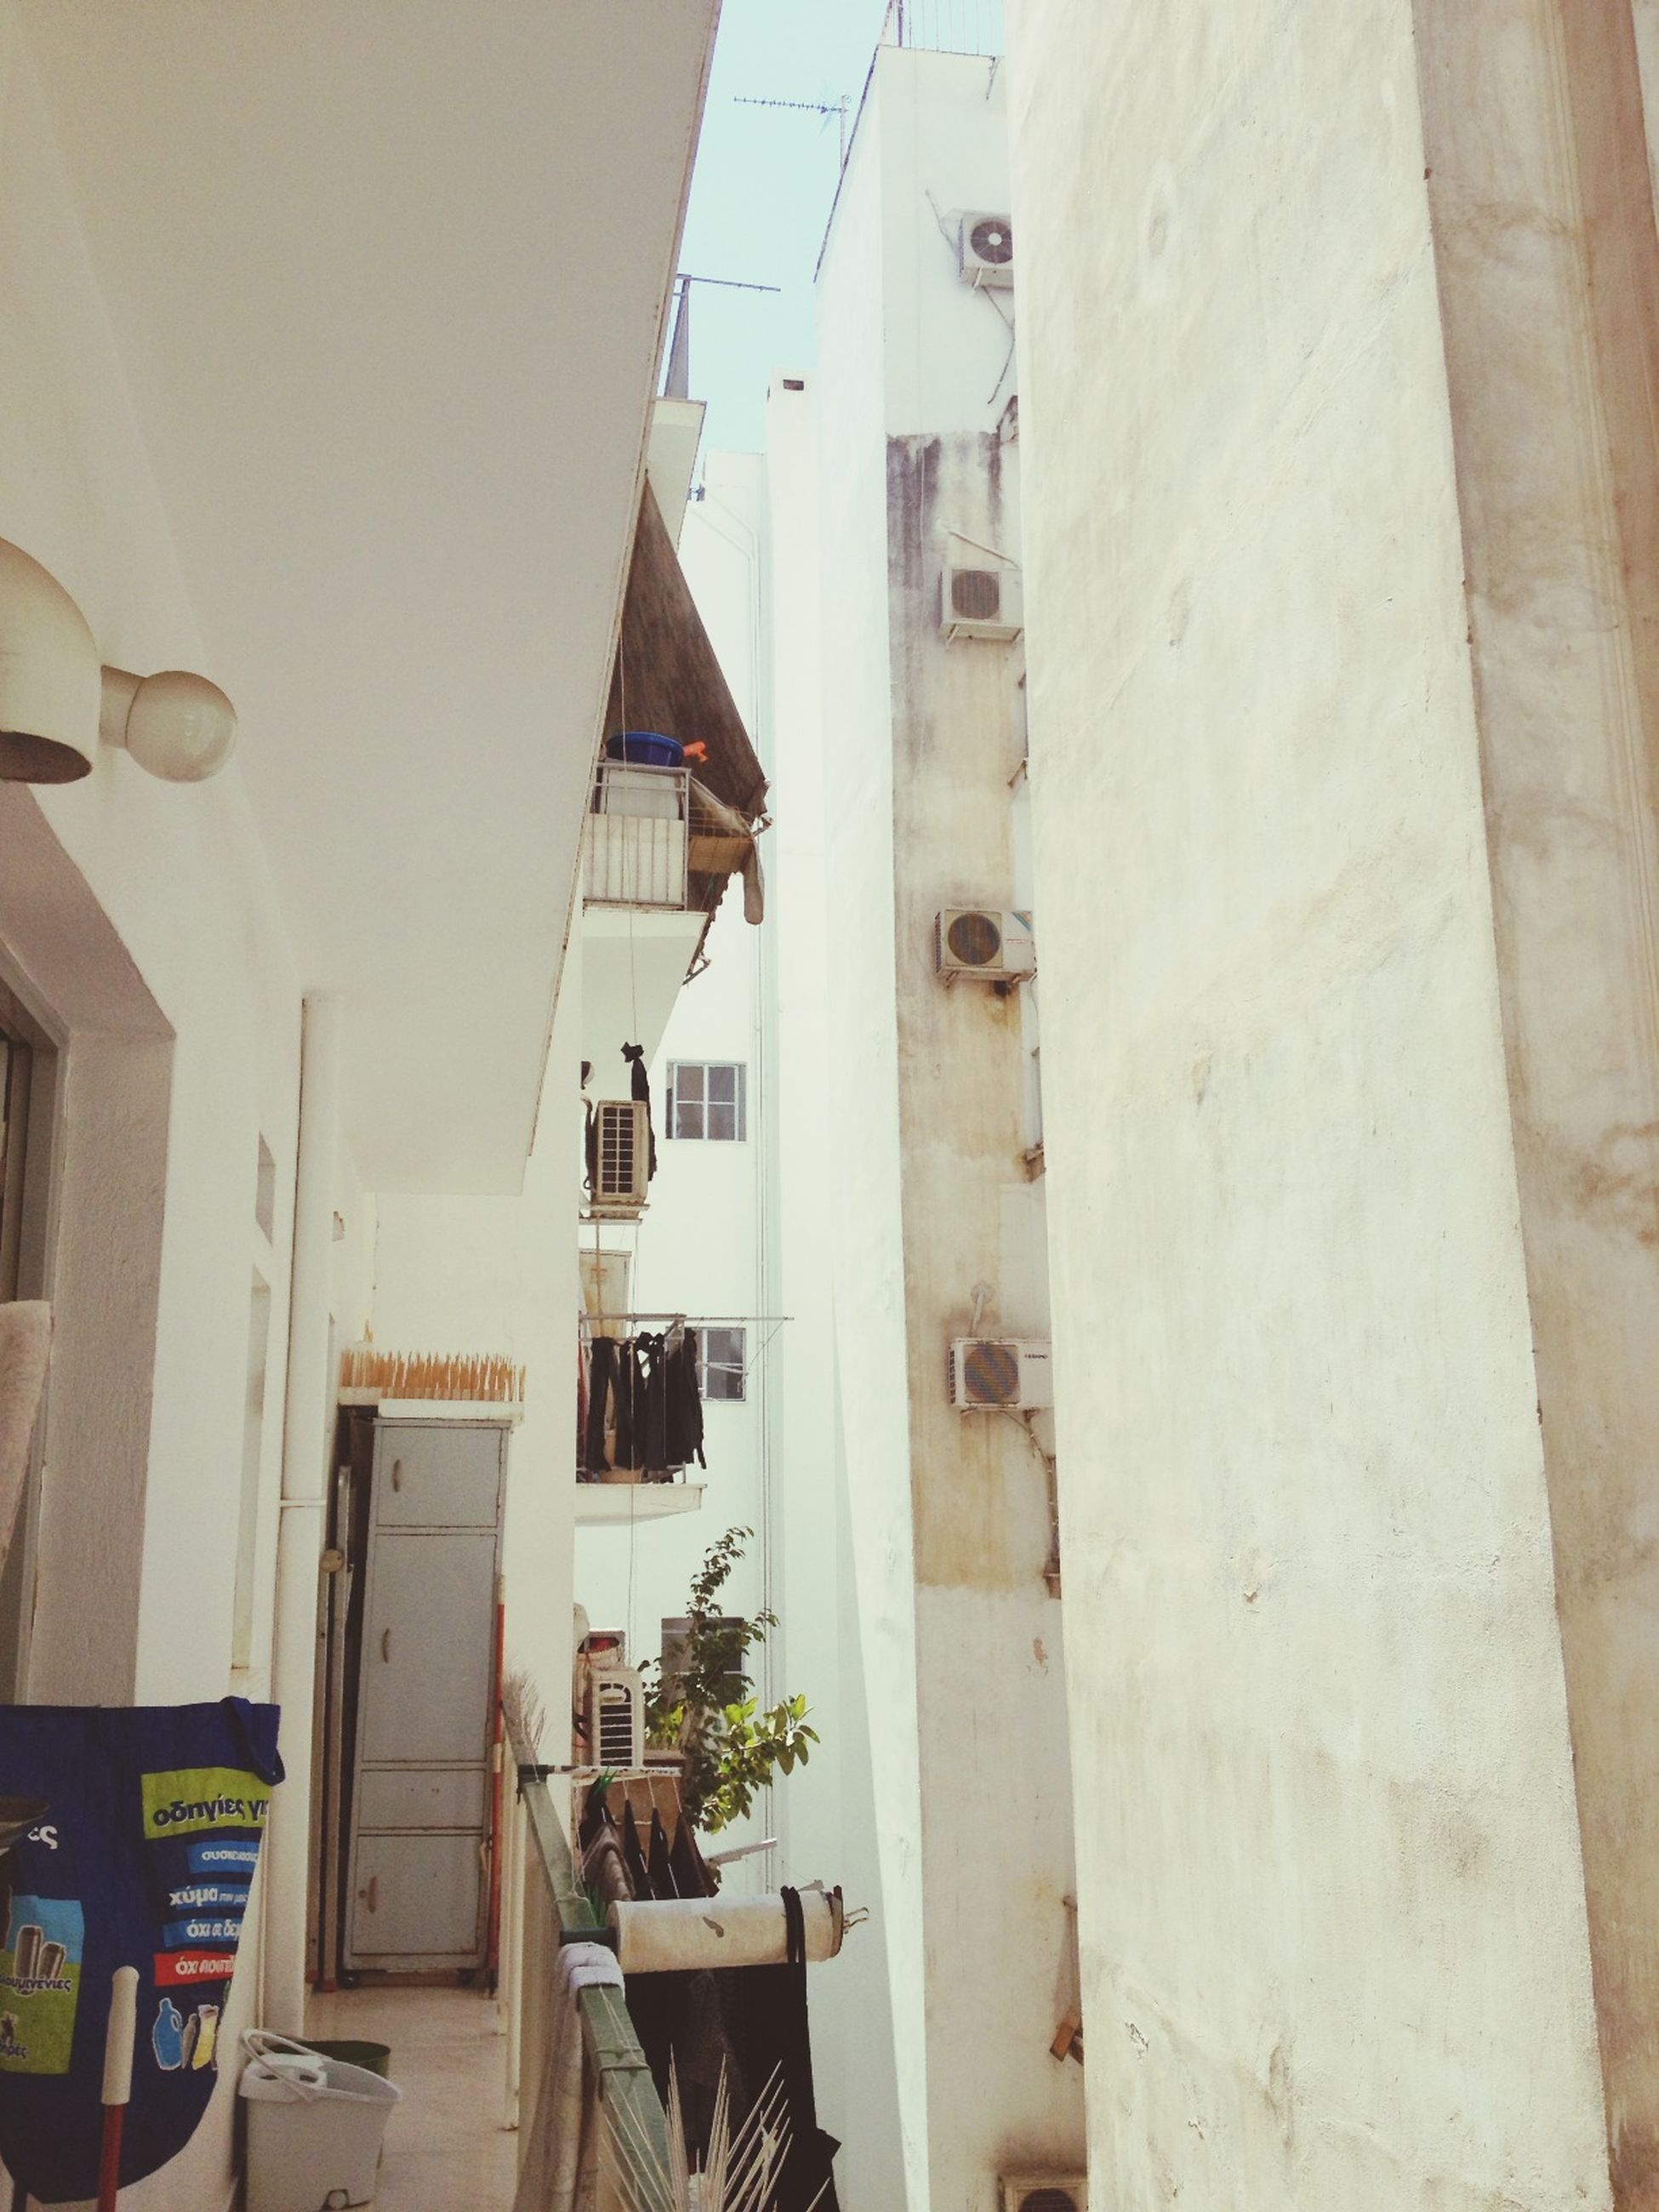 architecture, built structure, building exterior, residential structure, residential building, building, house, window, low angle view, day, no people, city, outdoors, balcony, hanging, sunlight, exterior, town, door, wall - building feature